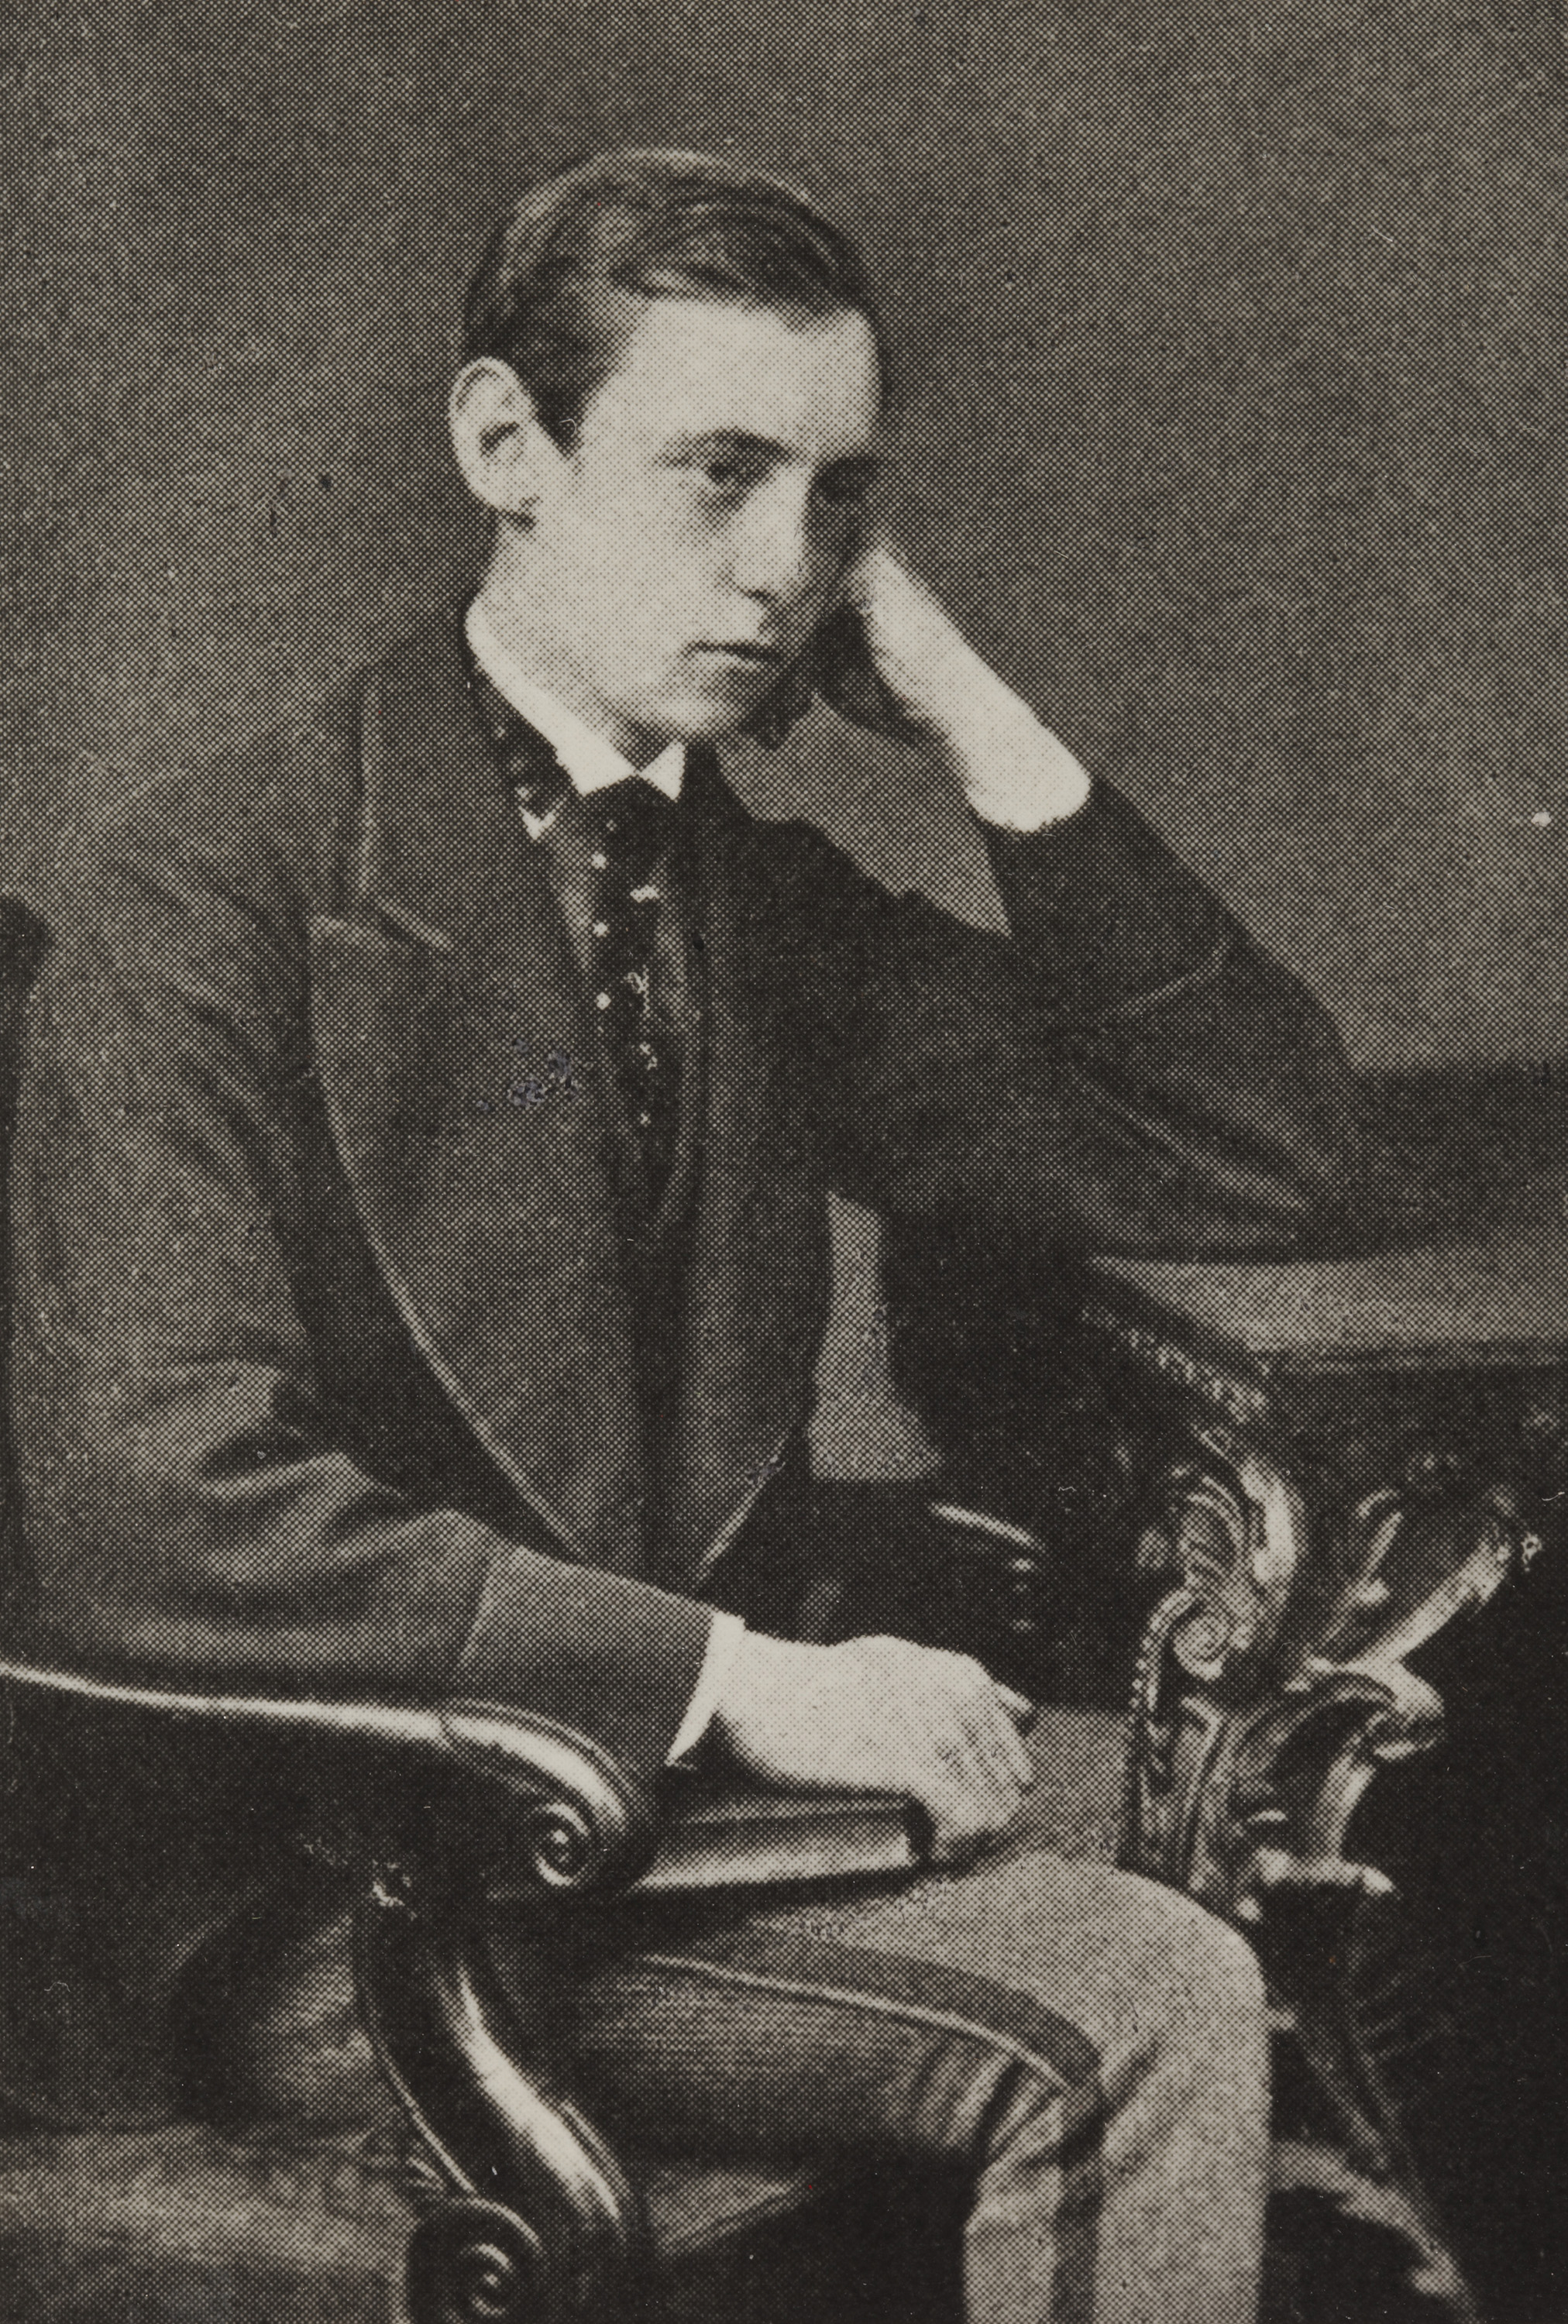 Image of Edward Bulwer Dickens